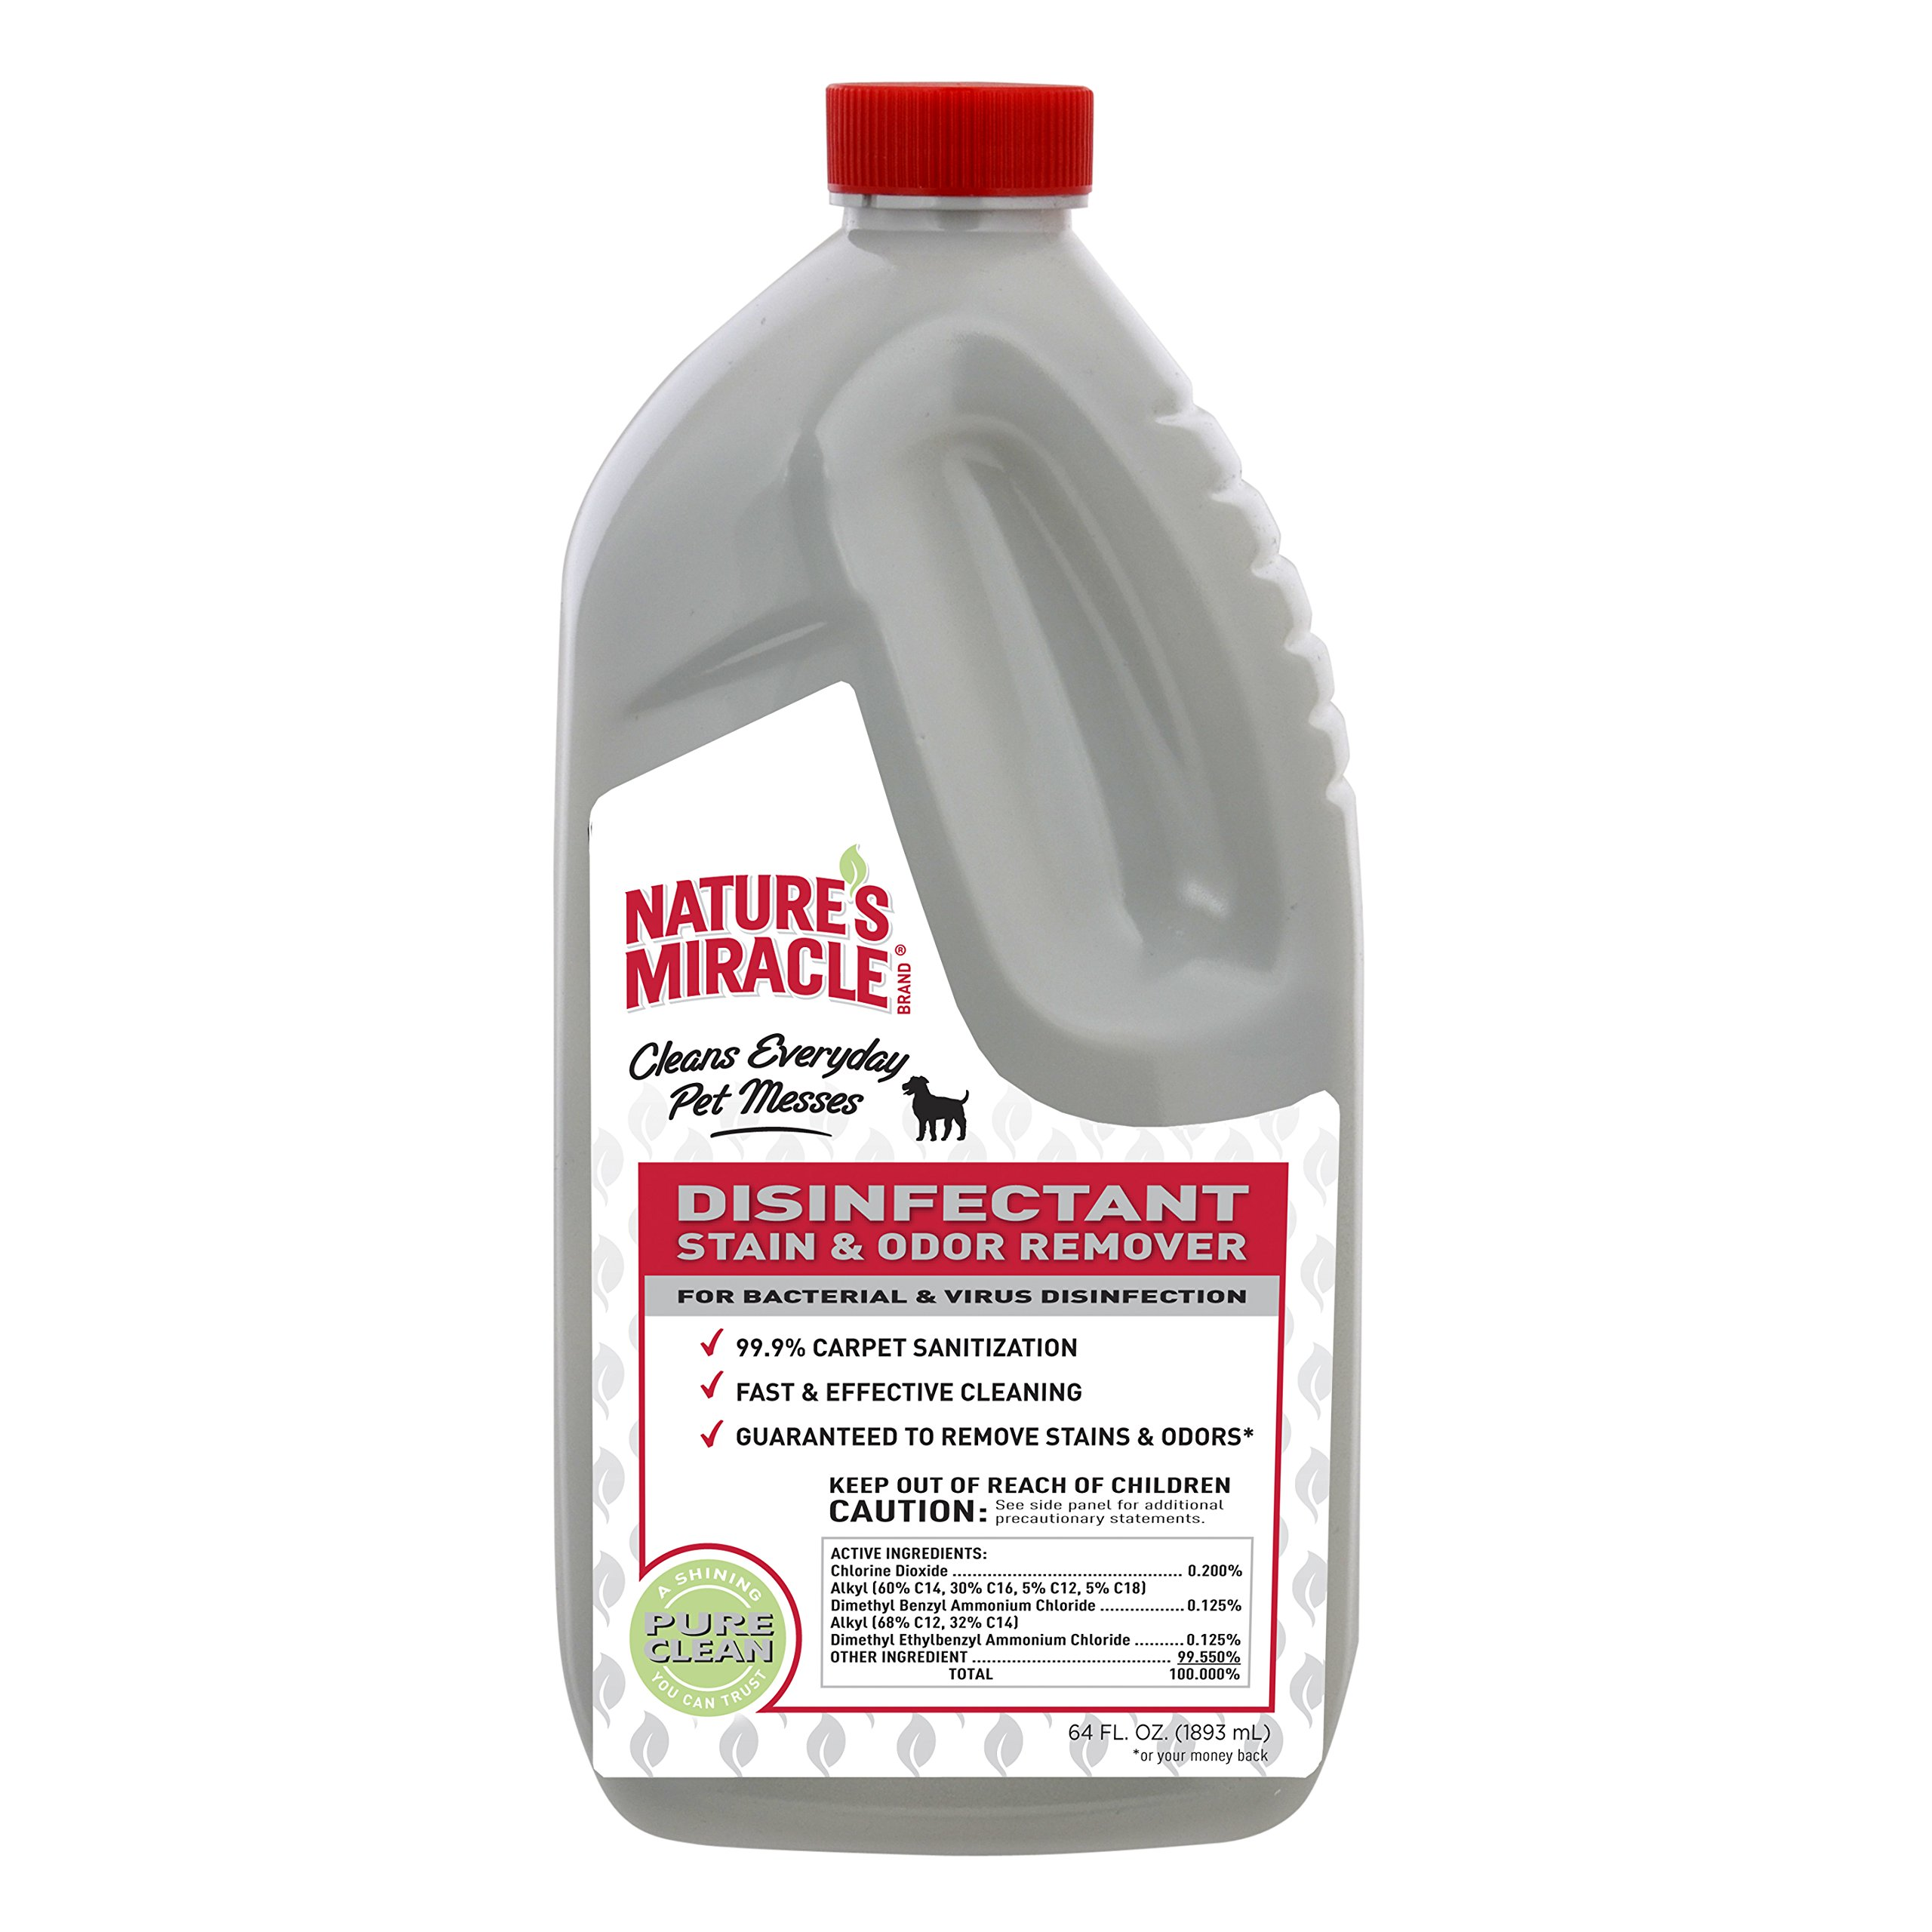 Nature's Miracle NM-5480 Brand Disinfectant Stain/Odor Remover, 64 oz